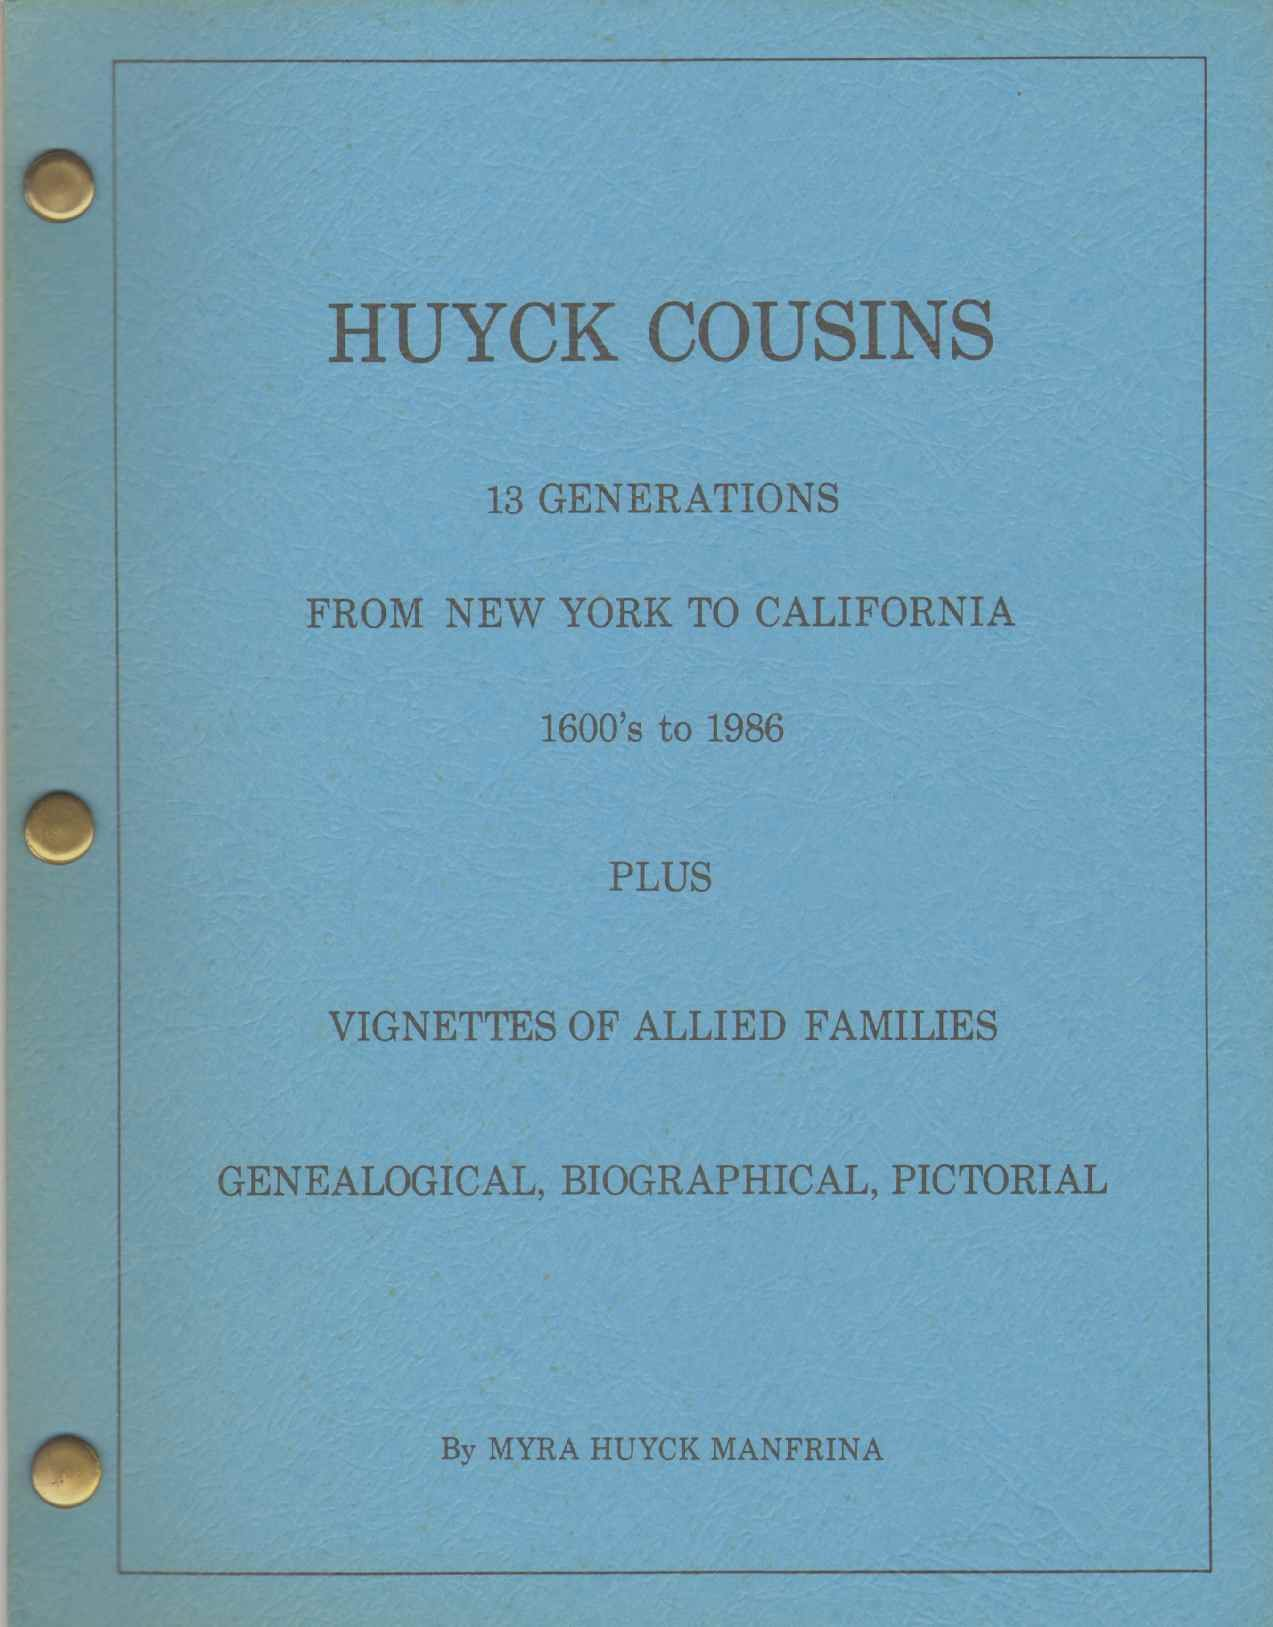 Huyck cousins: 18 generations from New York to California, 1600's to 1986, plus vignettes of allied families, genealogical, biographical, pictorial, Manfrina, Myra Huyck